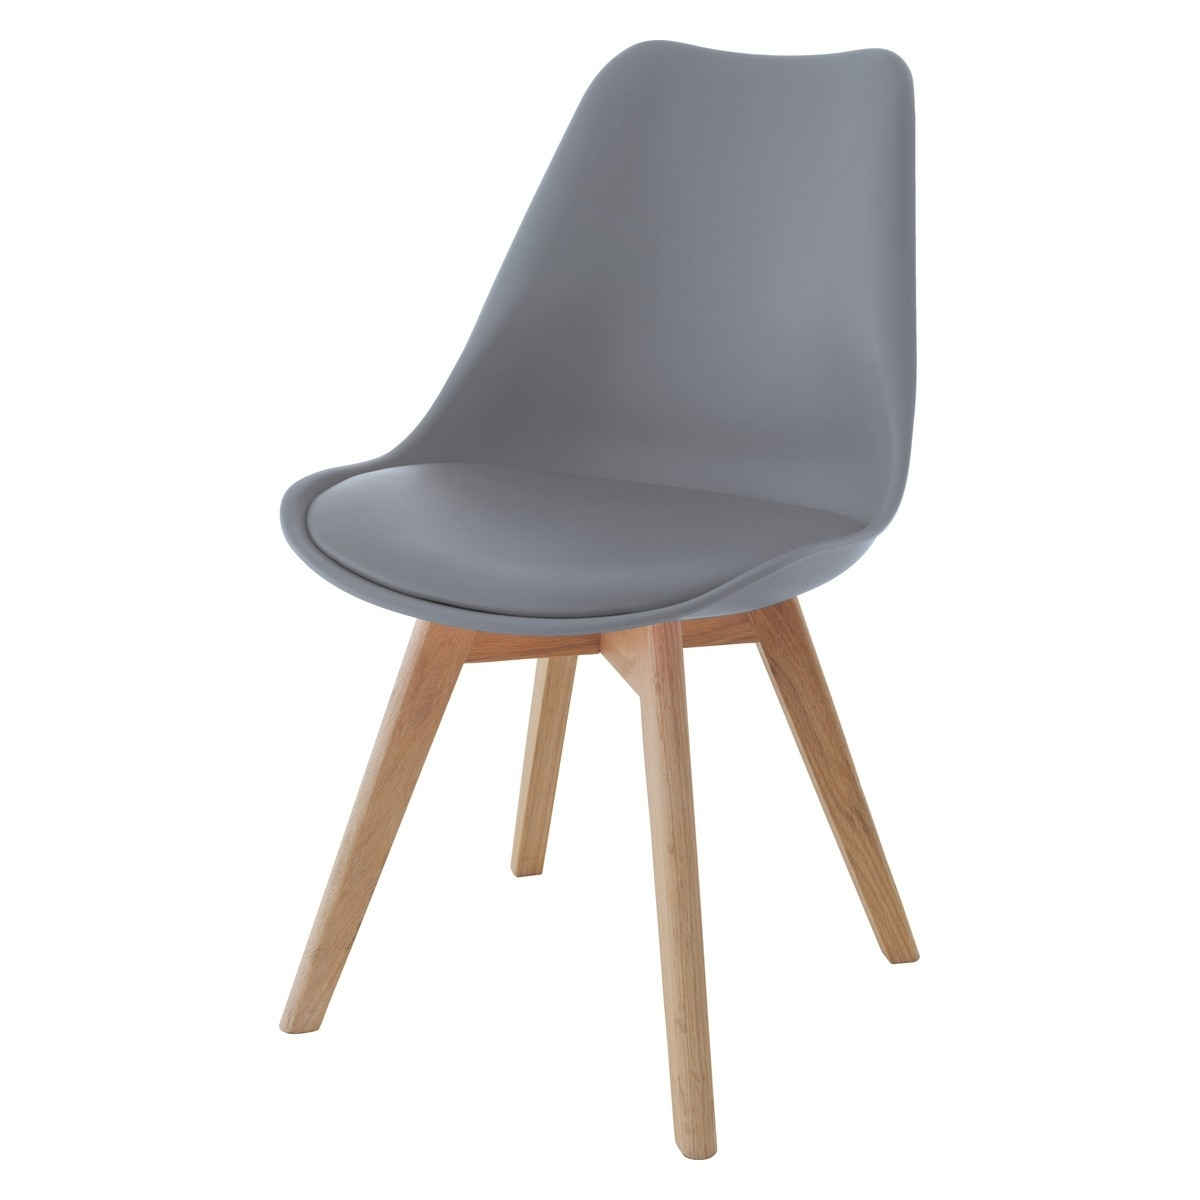 Buy Now At Habitat Uk In Best And Newest Grey Dining Chairs (View 3 of 25)